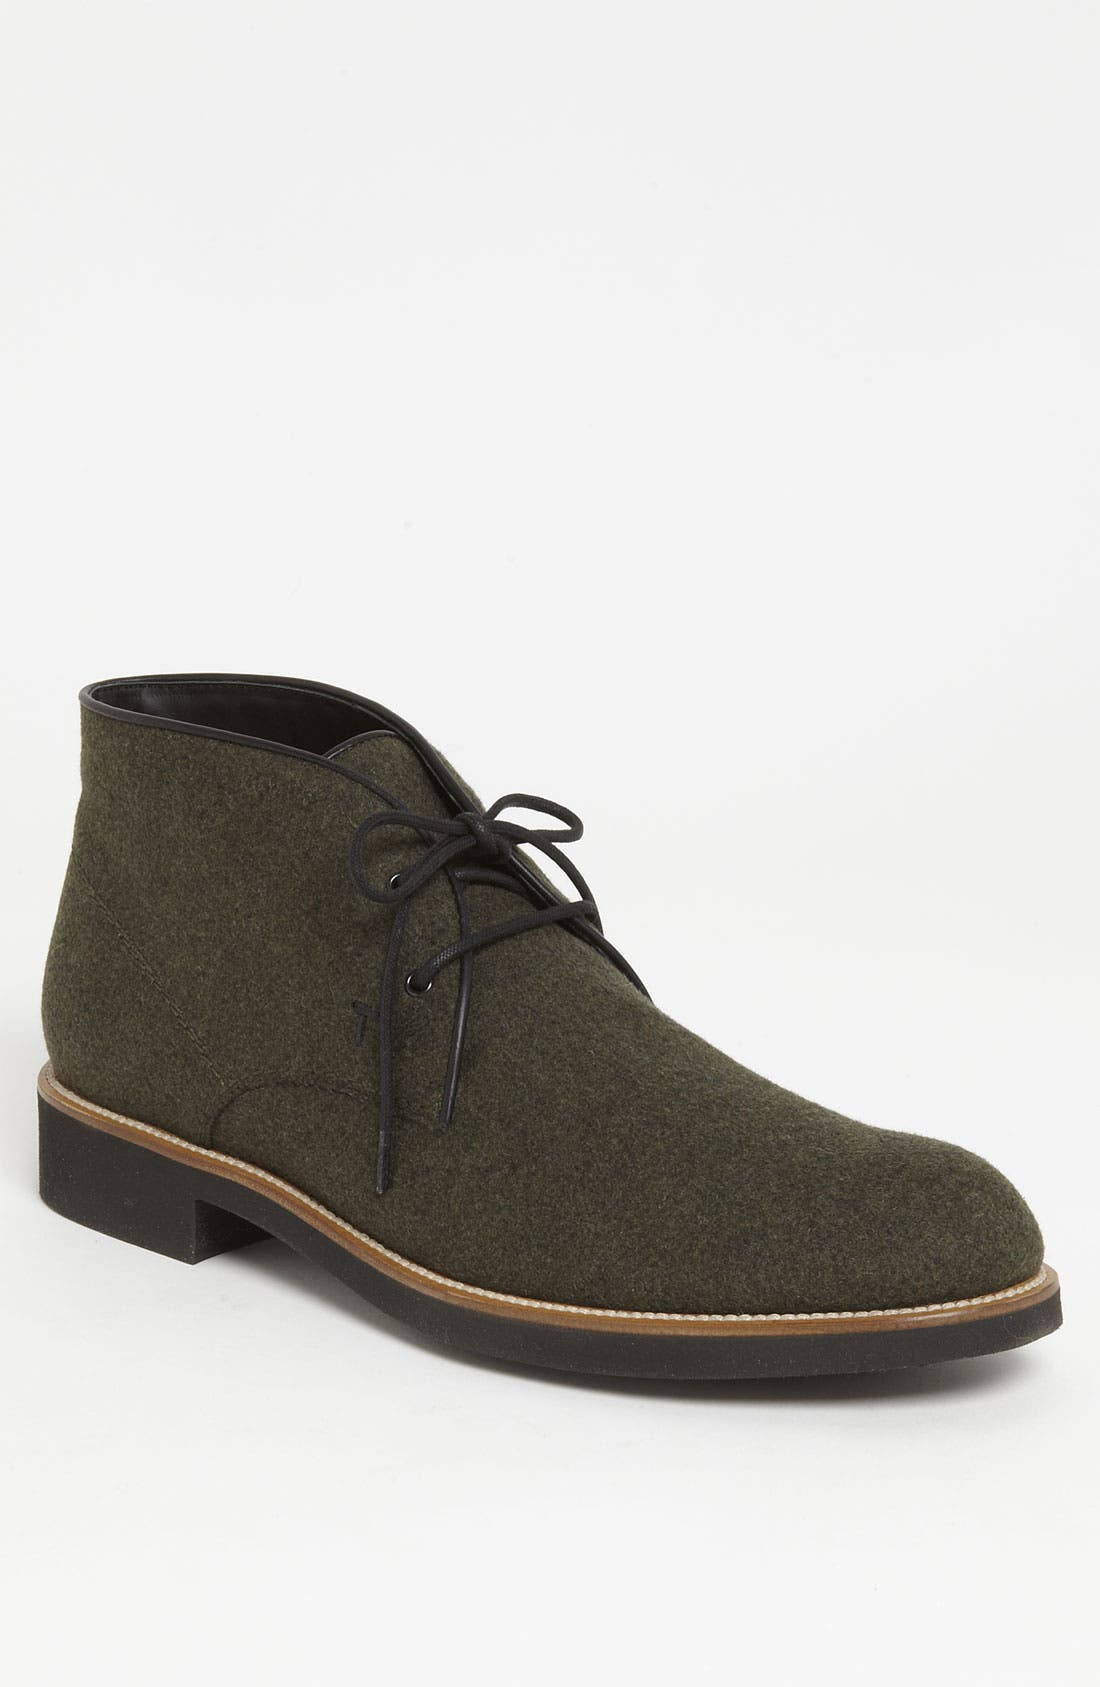 Alternate Image 1 Selected - Tod's 'Polacco' Ankle Boot